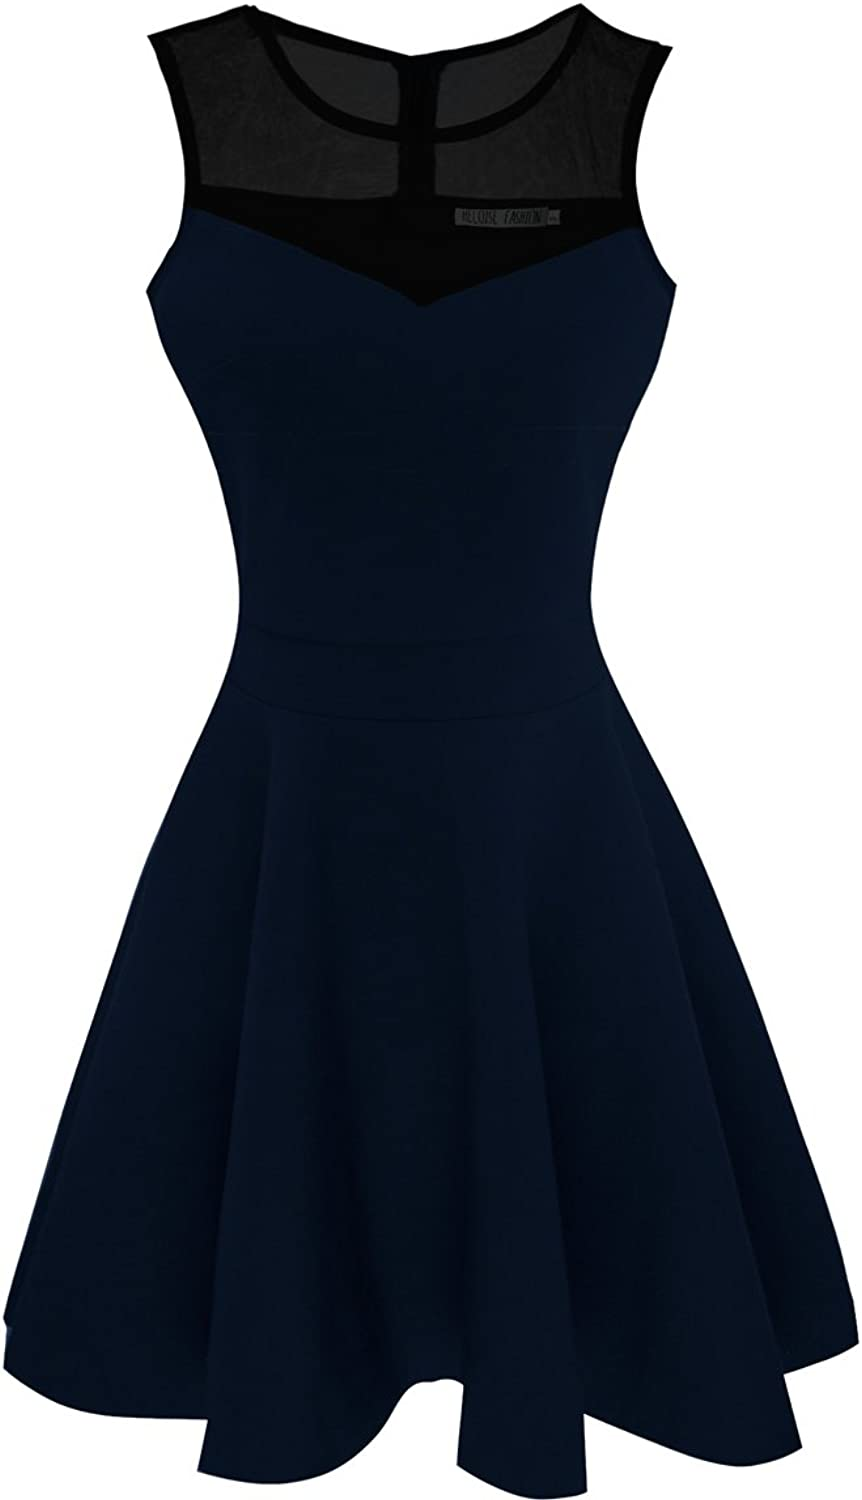 Sylvestidoso Women's ALine Sleeveless Pleated Little Dark Navy bluee Cocktail Party Dress with Black Mesh (S, Navy)